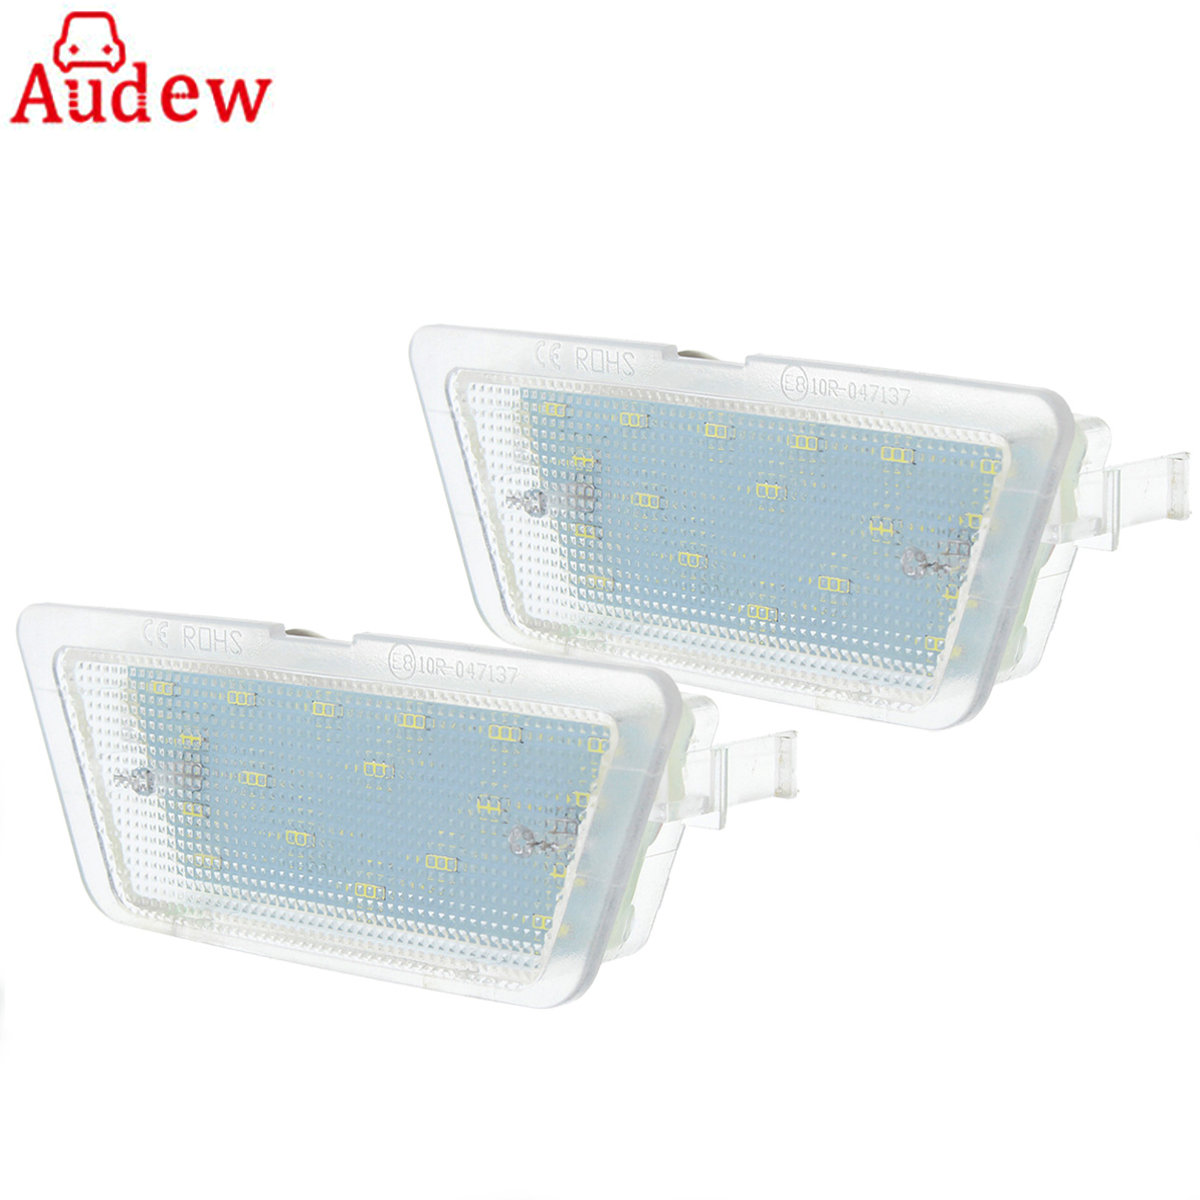 Car LED License Number Plate Light White Auto Tail Plate Lamp 12V-30V For Vauxhall Opel Astra G MK4 1998-2004 auto car led number license plate lights lamp bulb car styling xenon white for mitsubishi asx vehicles tail rear lamp